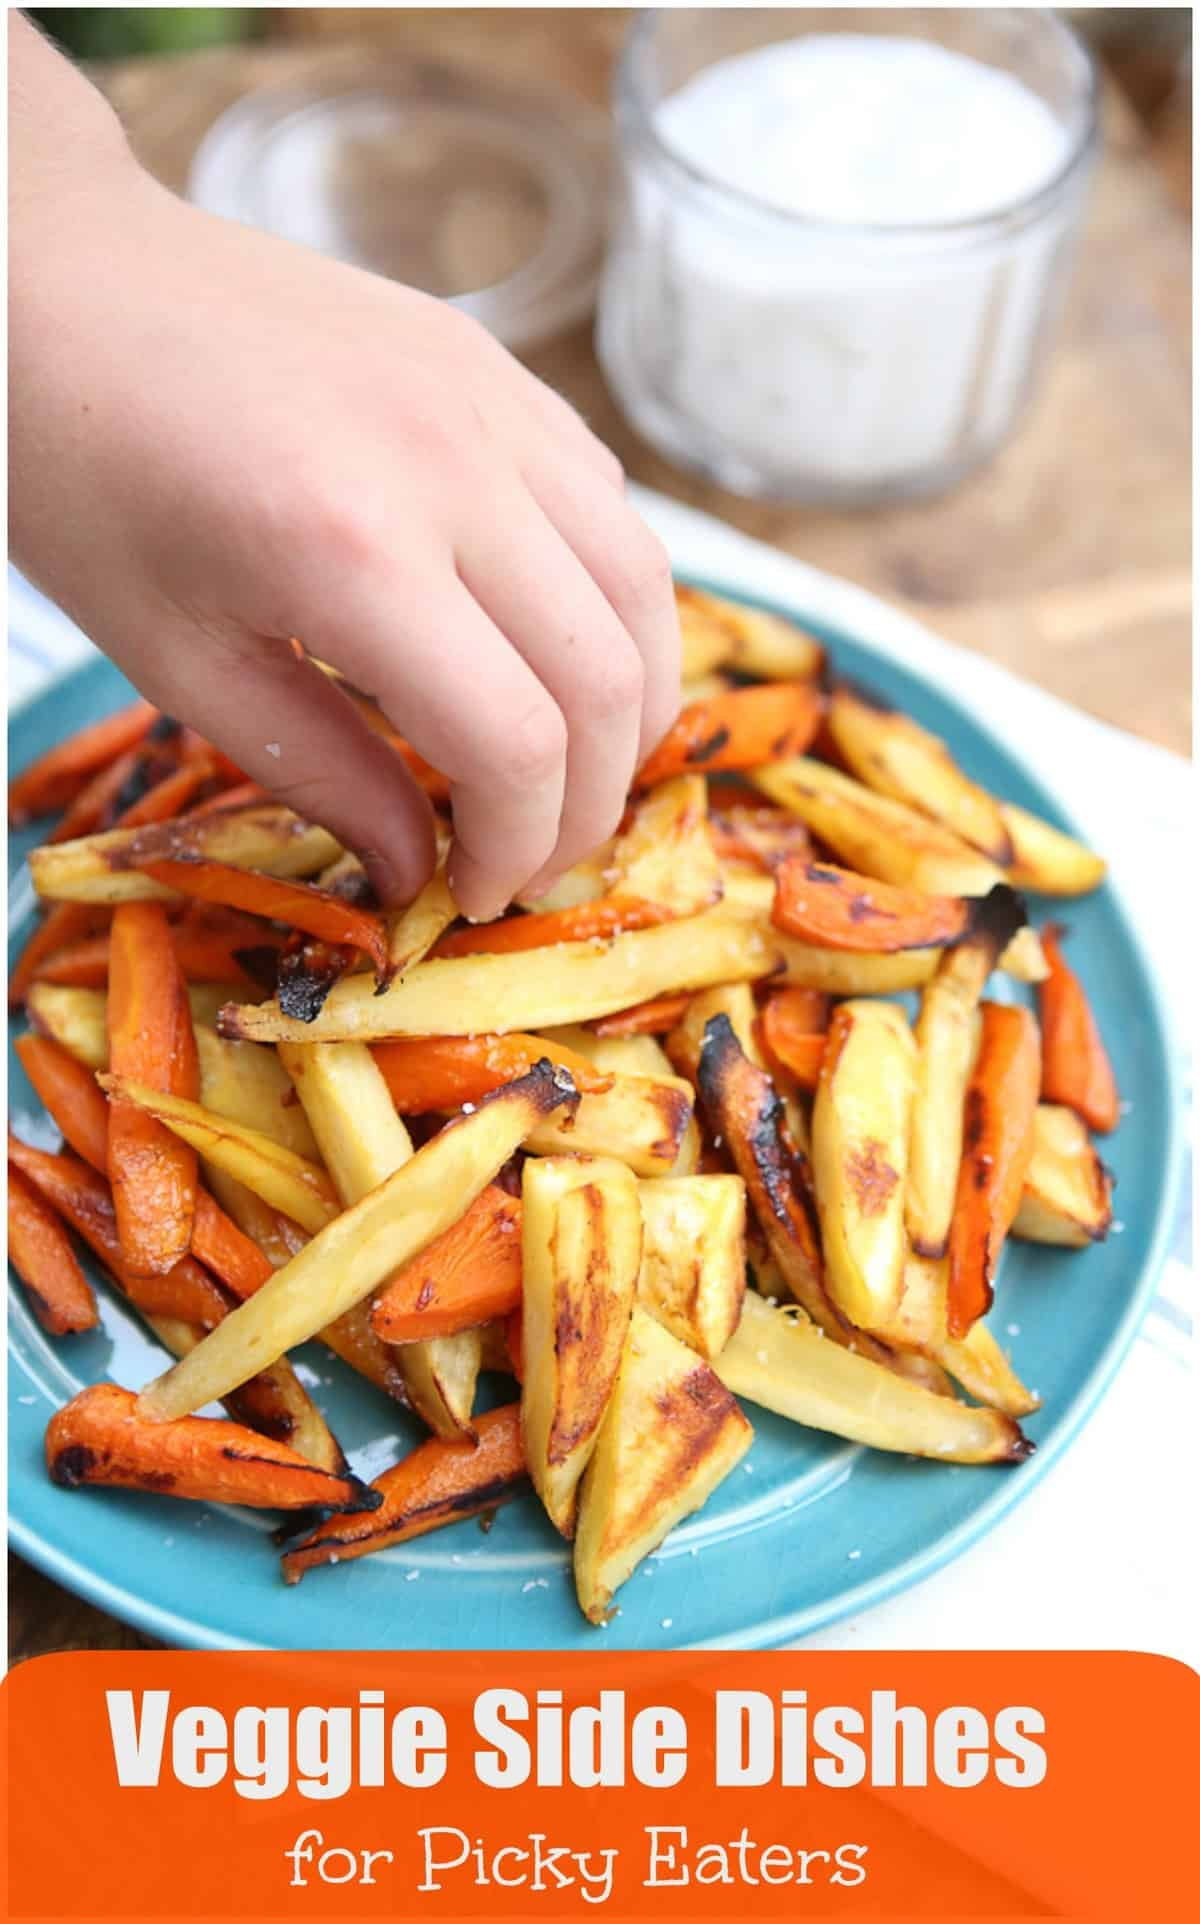 Veggie Side Dishes for Picky Eaters